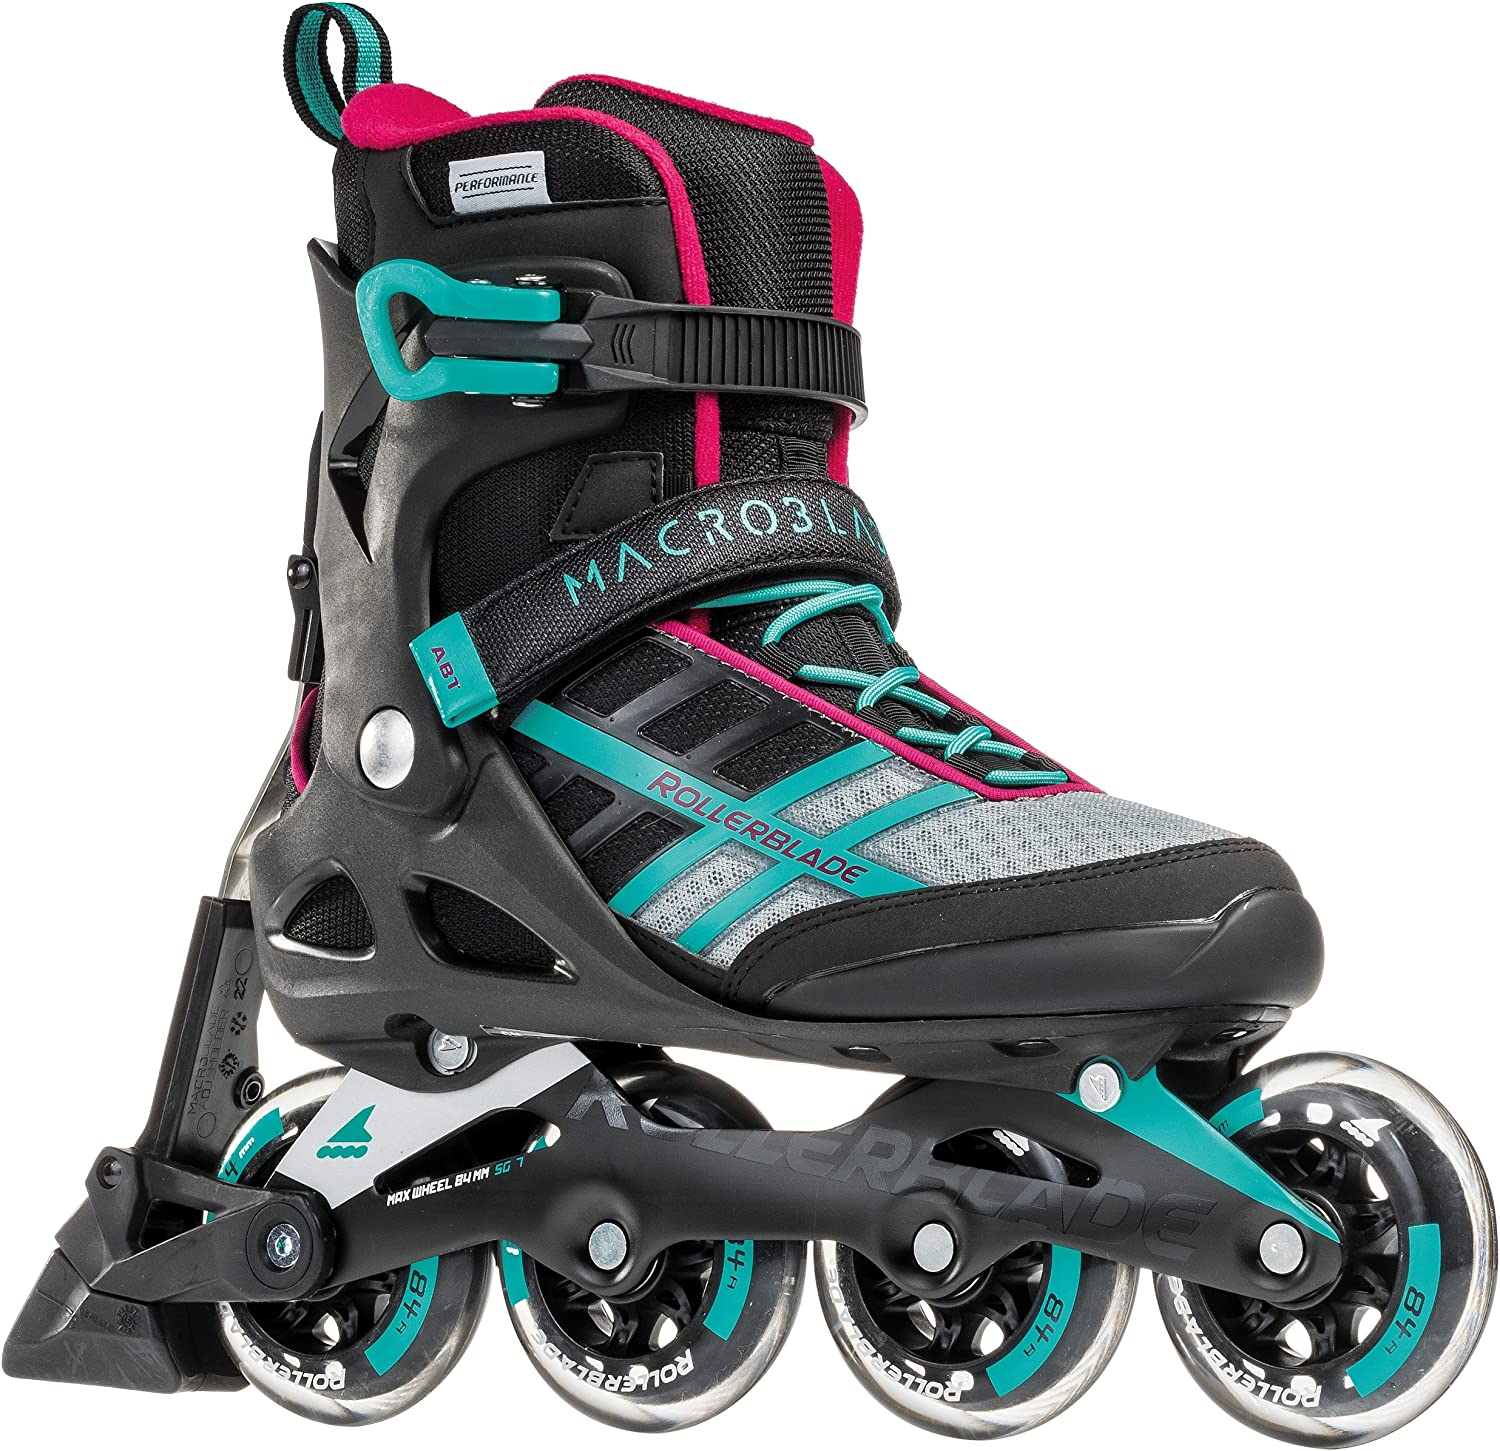 Rollerblade Macroblade 84 ABT Women s Adult Fitness Inline Skate, Emerald Green and Cherry, Performance Inline Skates